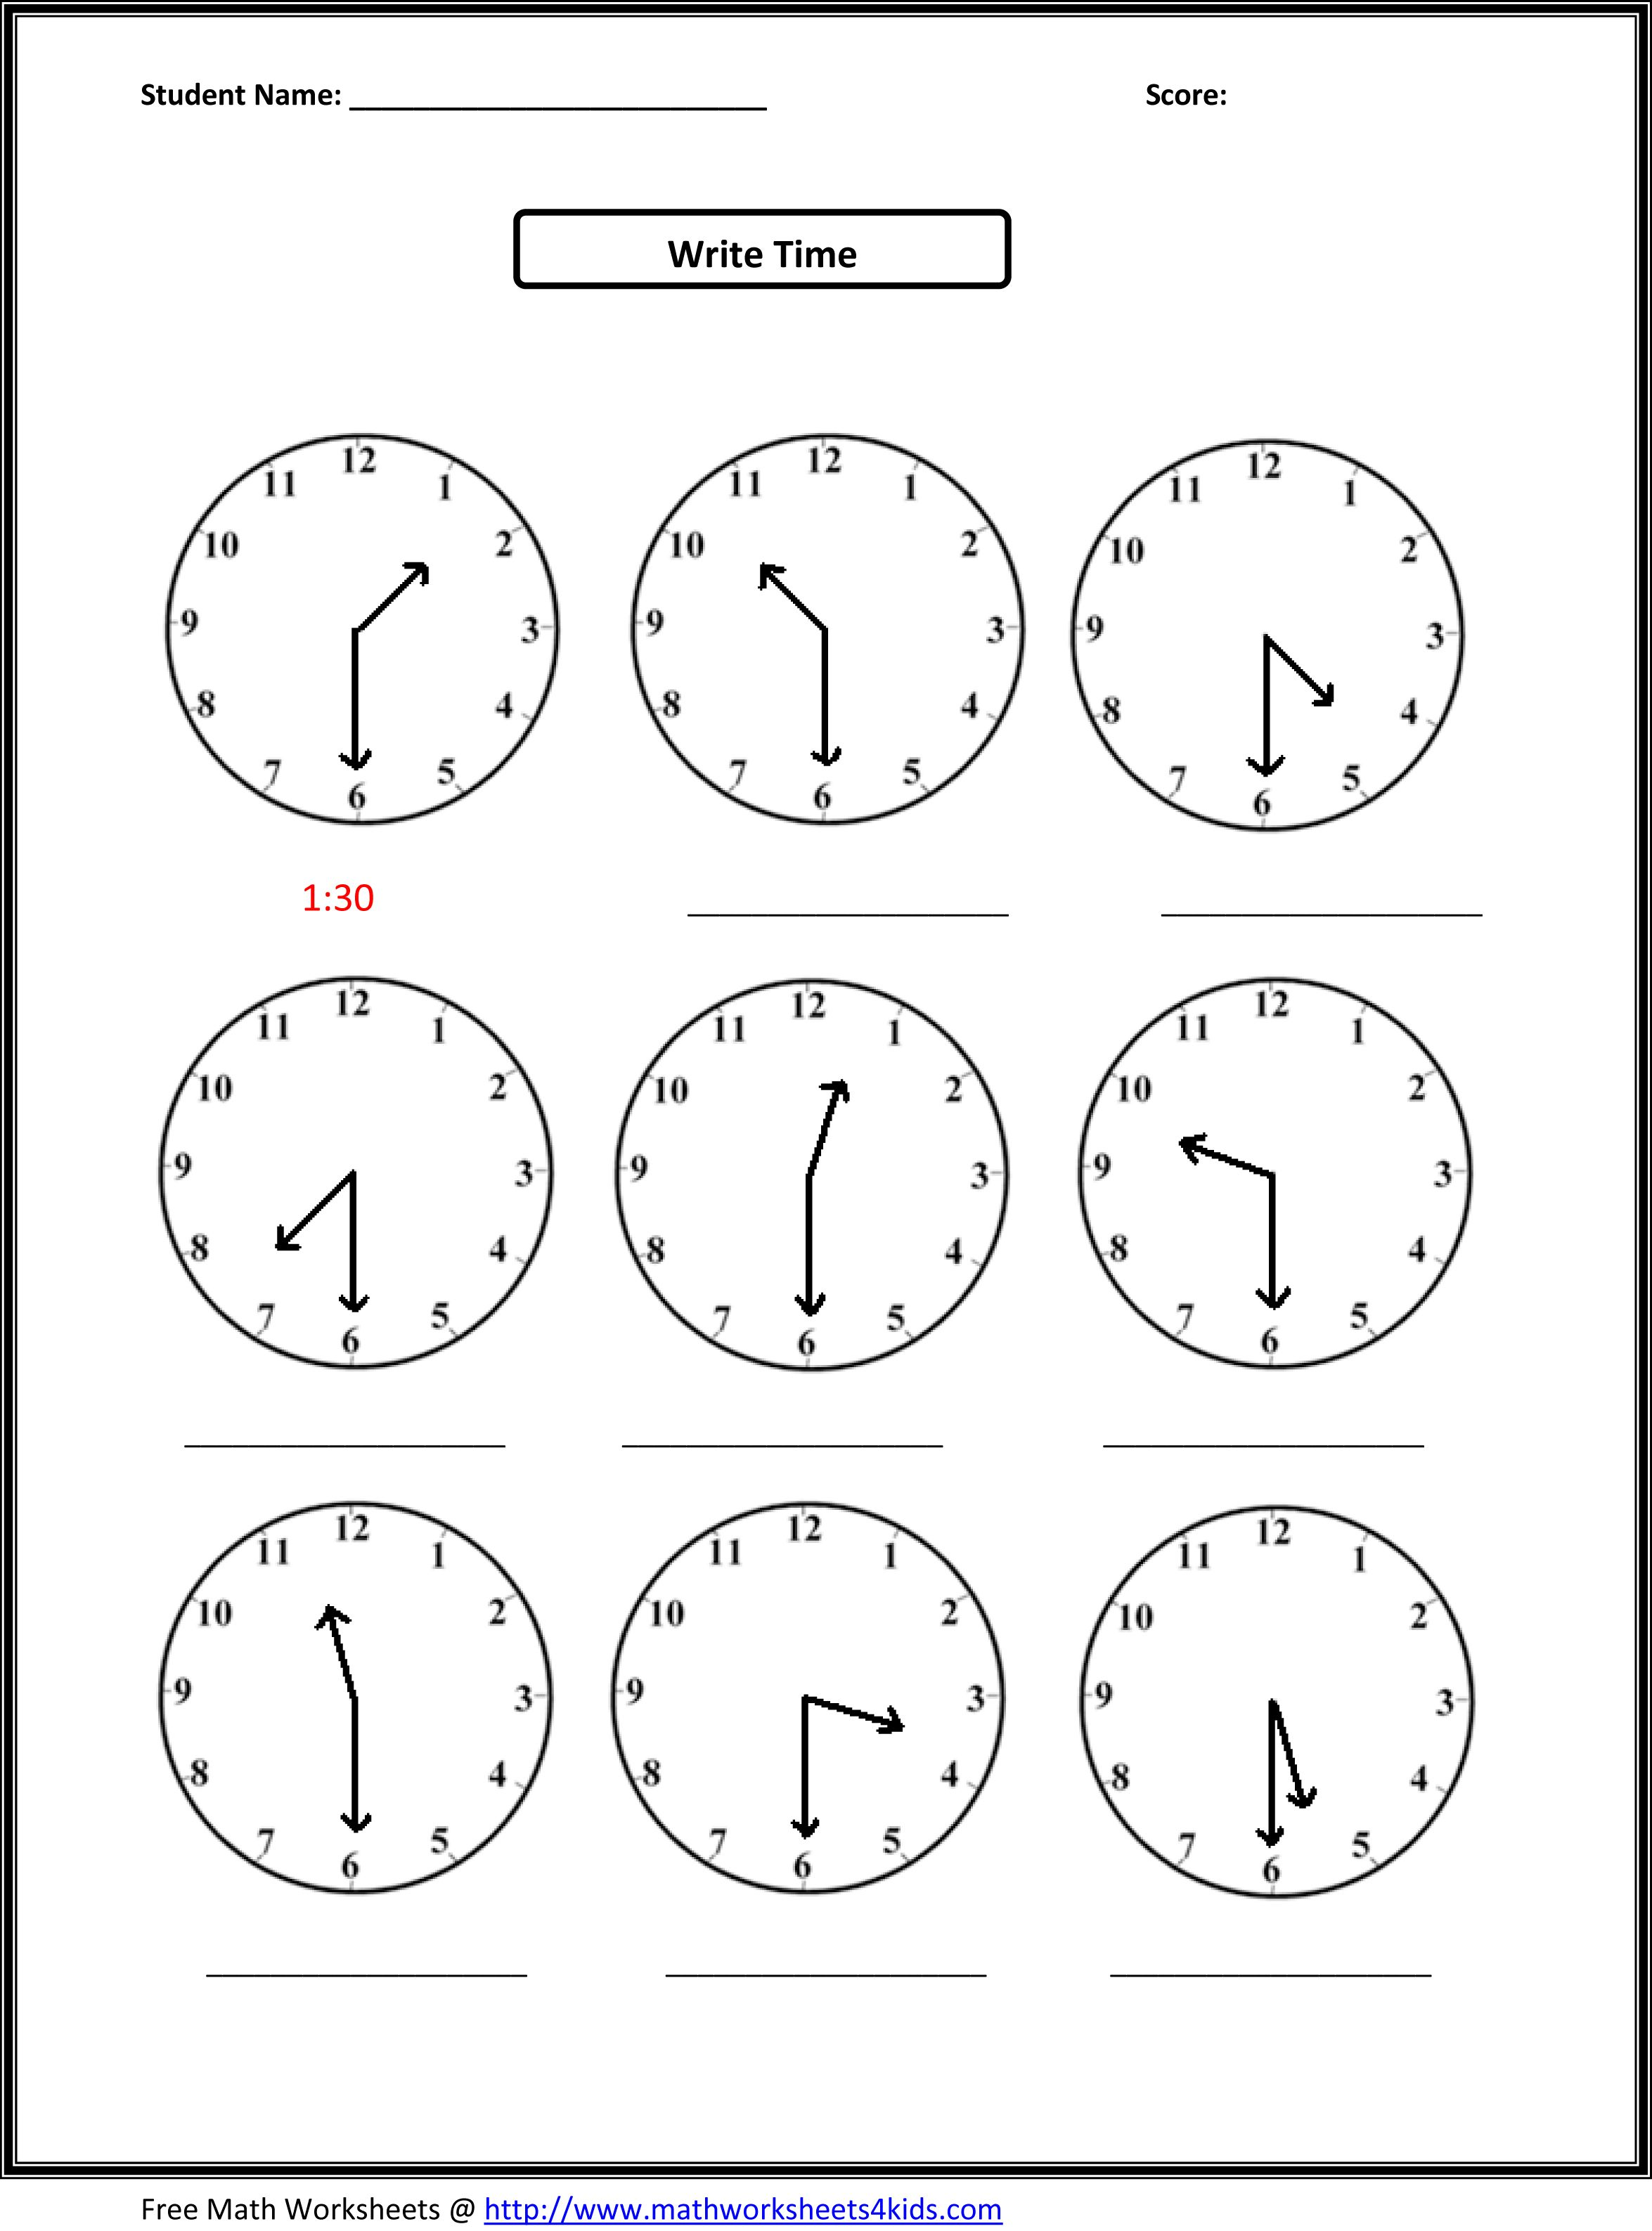 Weirdmailus  Pleasing Worksheet On Time For Grade   Reocurent With Exciting Free Printable Telling Time Worksheets Nd Grade  Reocurent With Lovely Seder Plate Worksheet Also Colouring Worksheets Printable In Addition Water Safety For Kids Worksheets And Halves And Quarters Worksheets As Well As Fractions Grade  Free Worksheets Additionally Printable Worksheets For Grade  From Reocurentcom With Weirdmailus  Exciting Worksheet On Time For Grade   Reocurent With Lovely Free Printable Telling Time Worksheets Nd Grade  Reocurent And Pleasing Seder Plate Worksheet Also Colouring Worksheets Printable In Addition Water Safety For Kids Worksheets From Reocurentcom